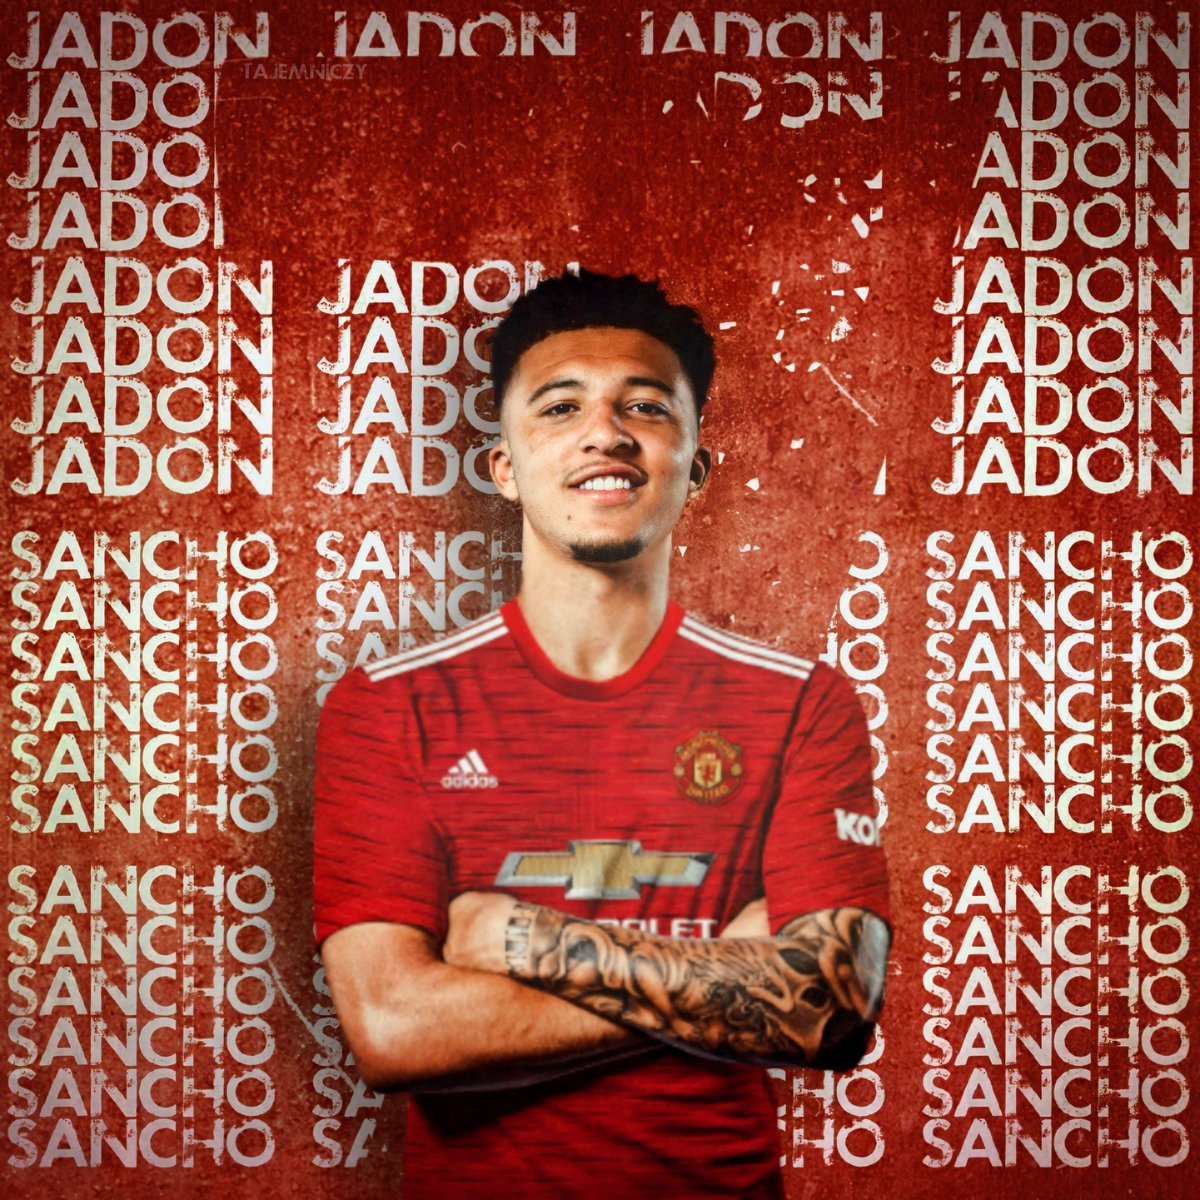 #mufc breaking news #MUFC have summited third bid for sancho which will rise to 120m United confident #bvb accept #Sancho https://t.co/wCq1hqtfx4